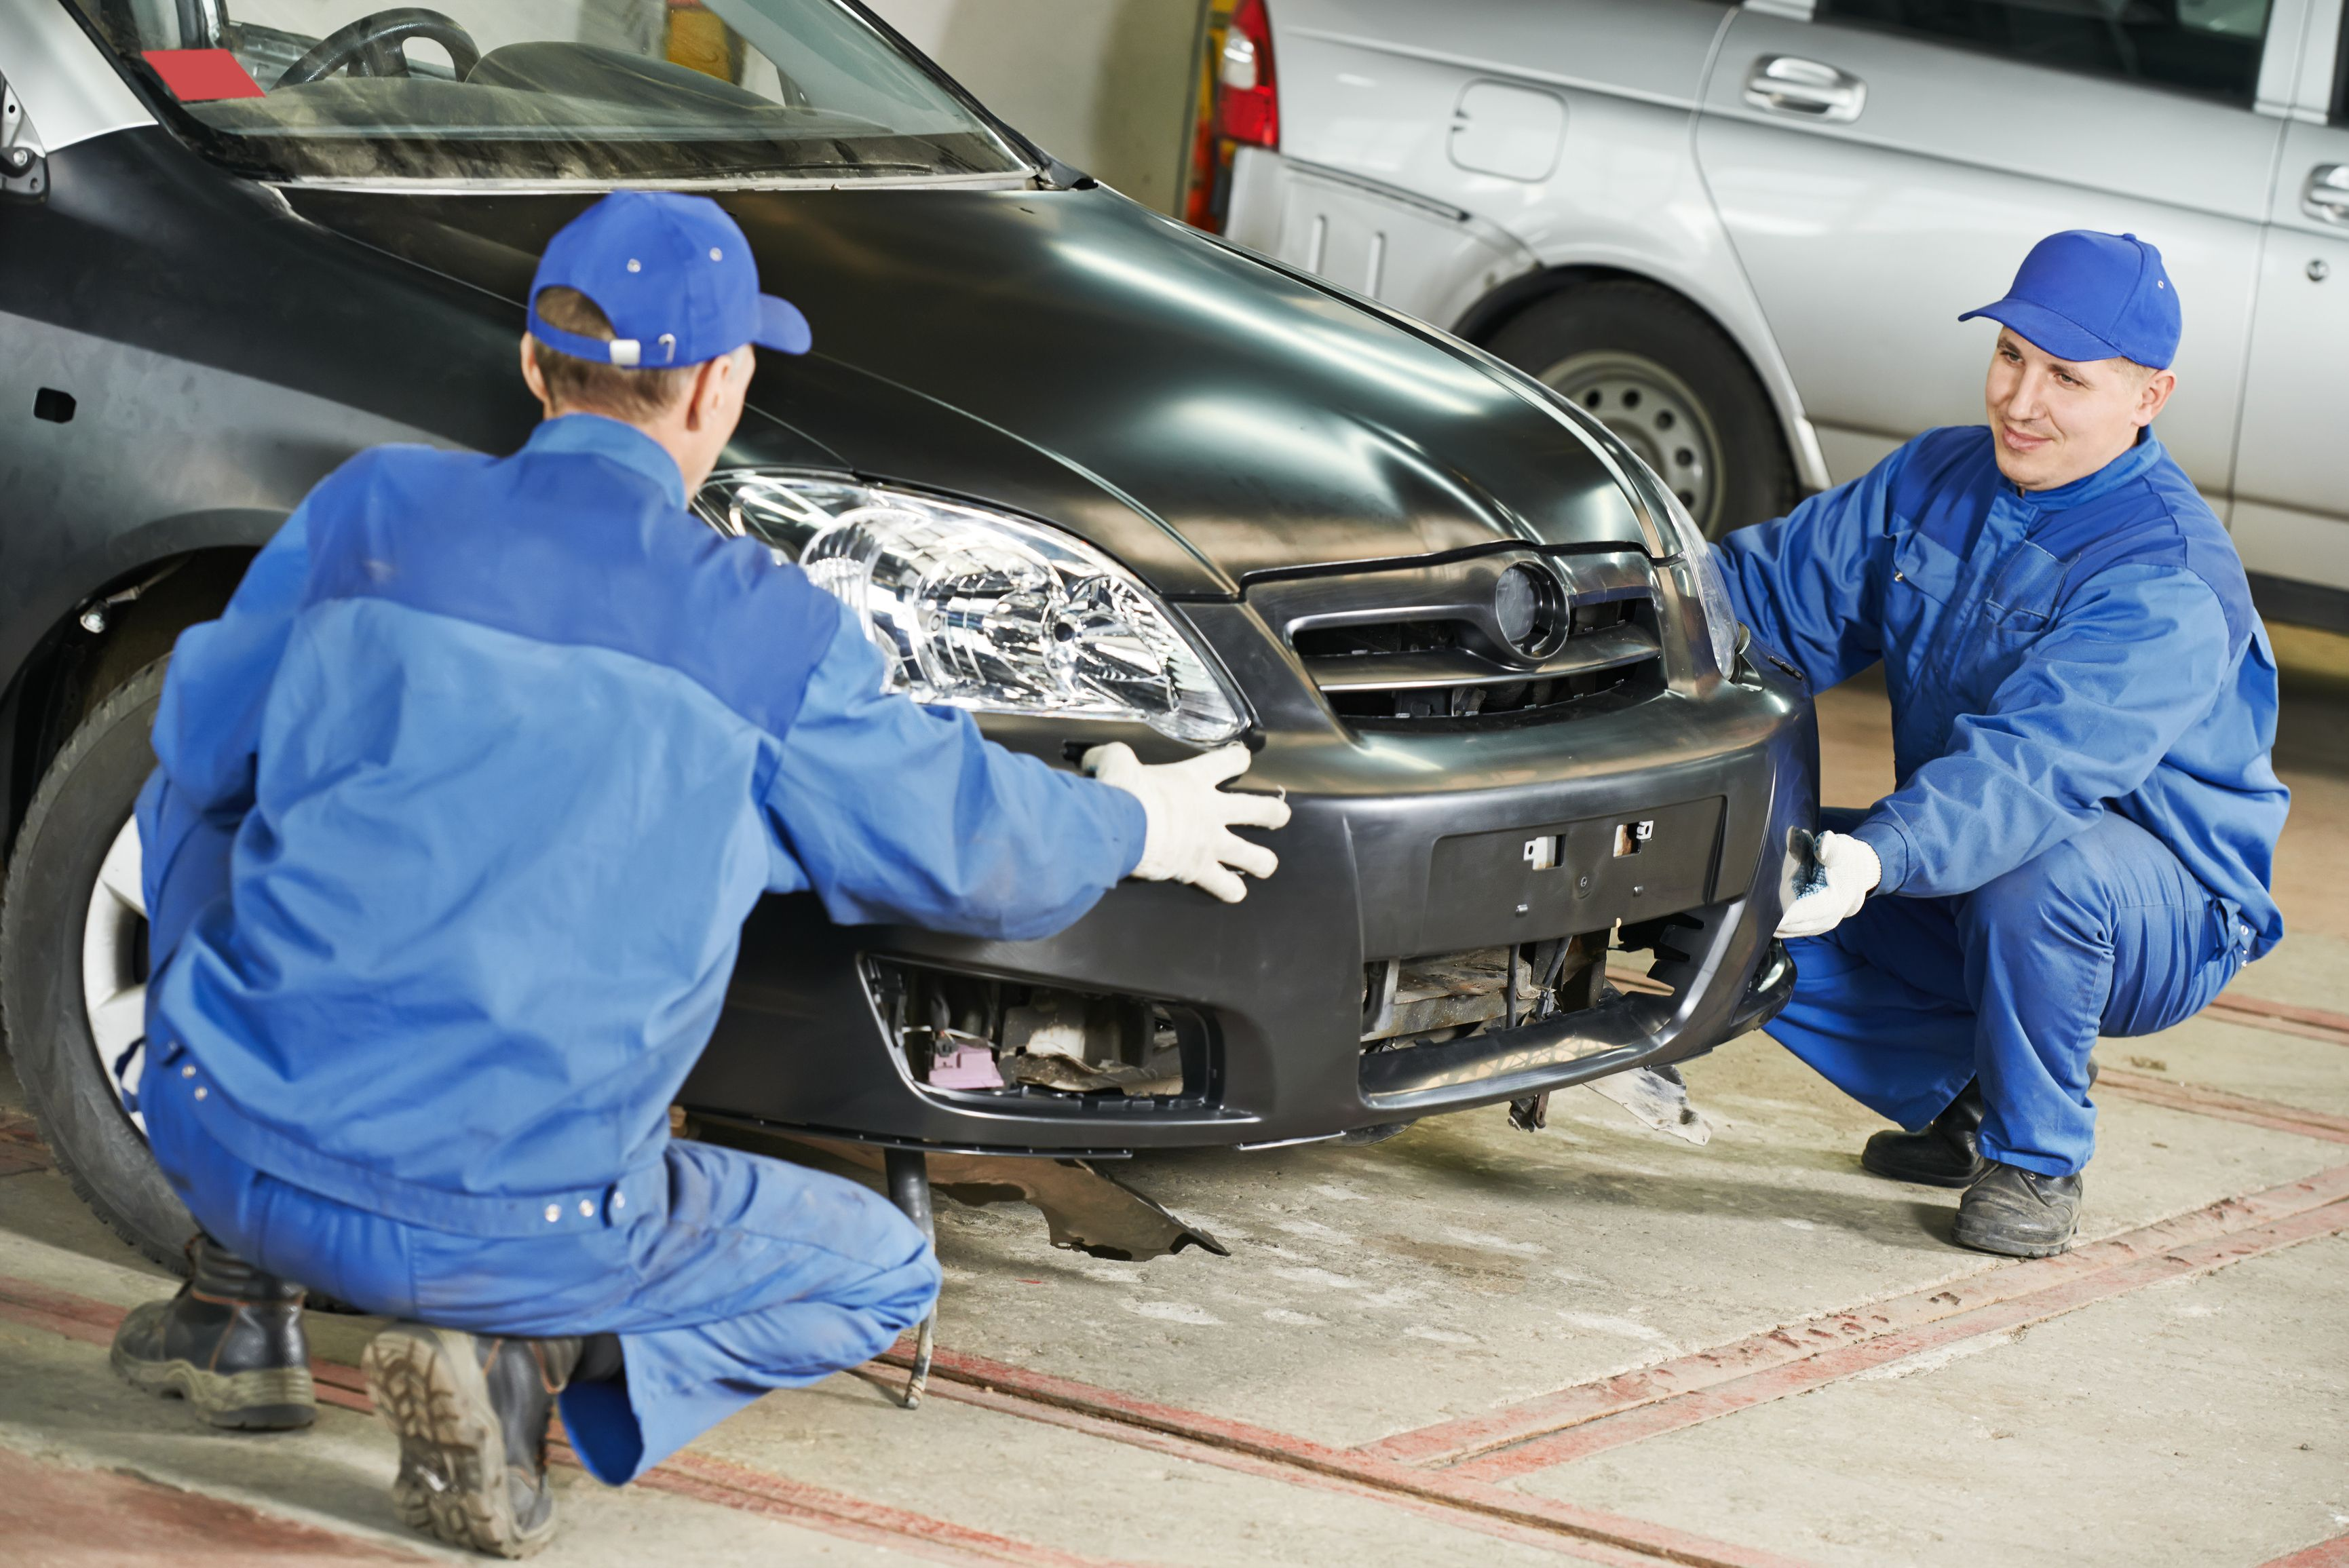 Auto Body Repair - Restoring Vehicles